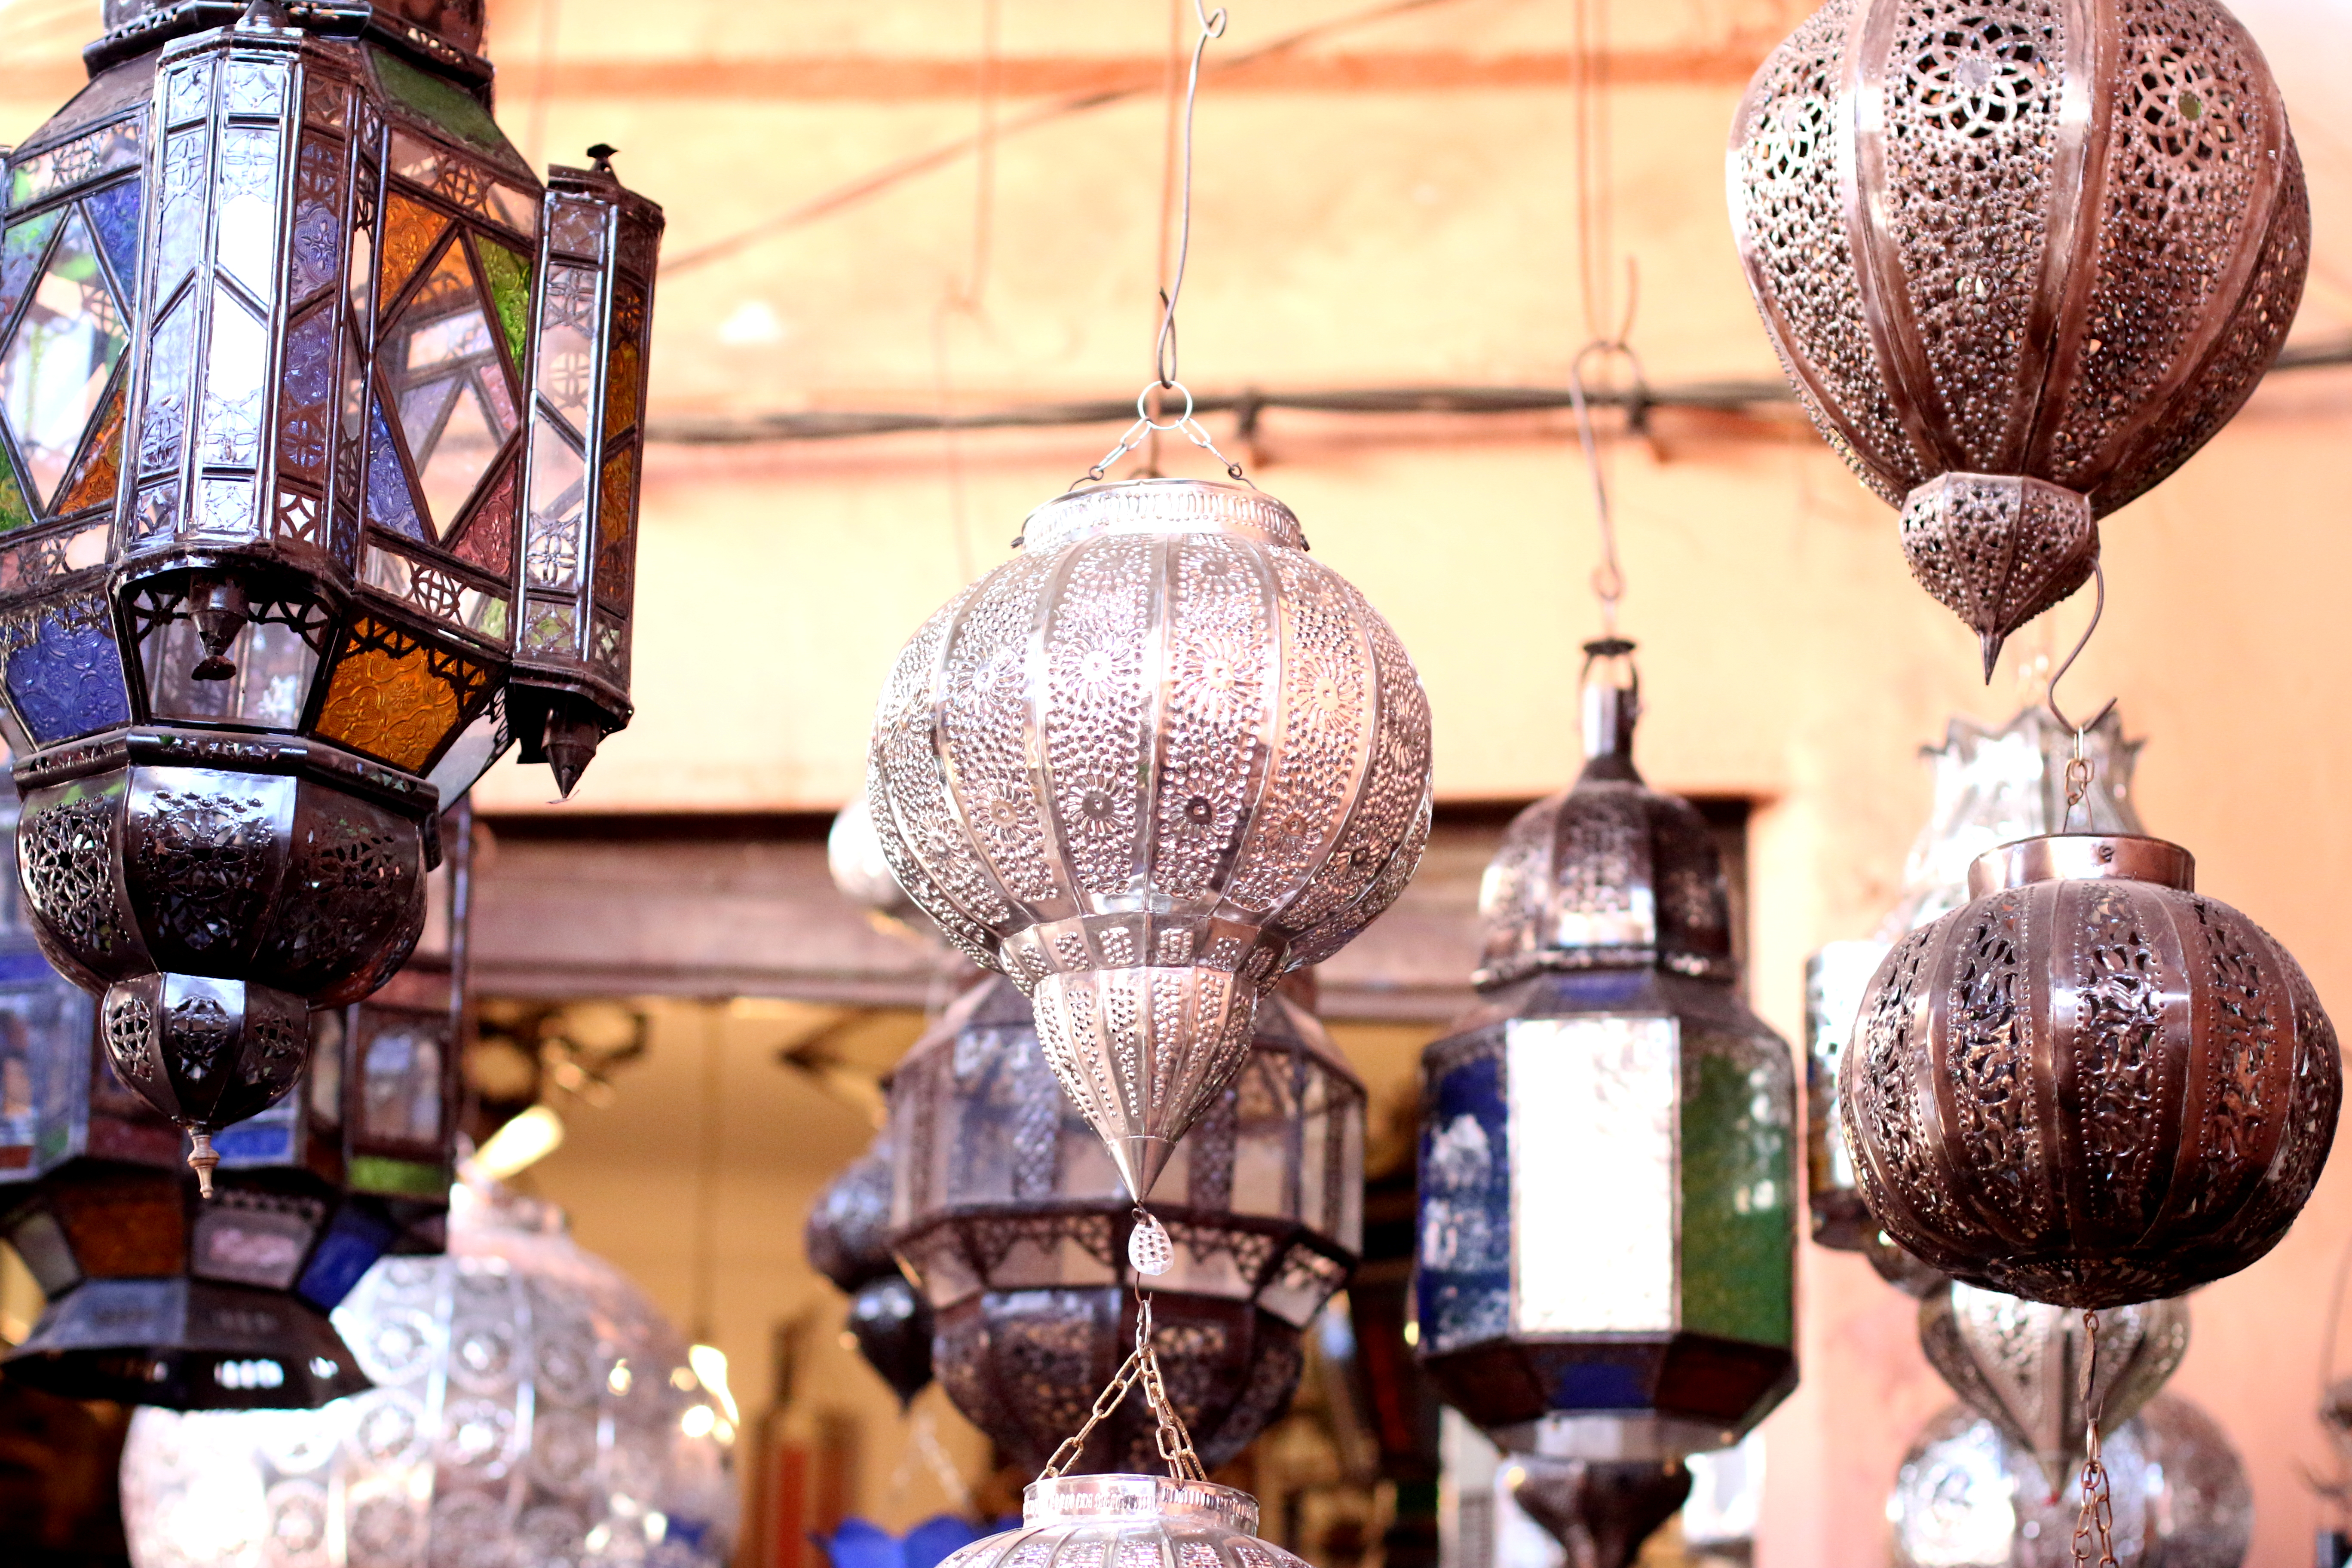 marrakech travel guide travel blog travel tips marrakesch reiseblog